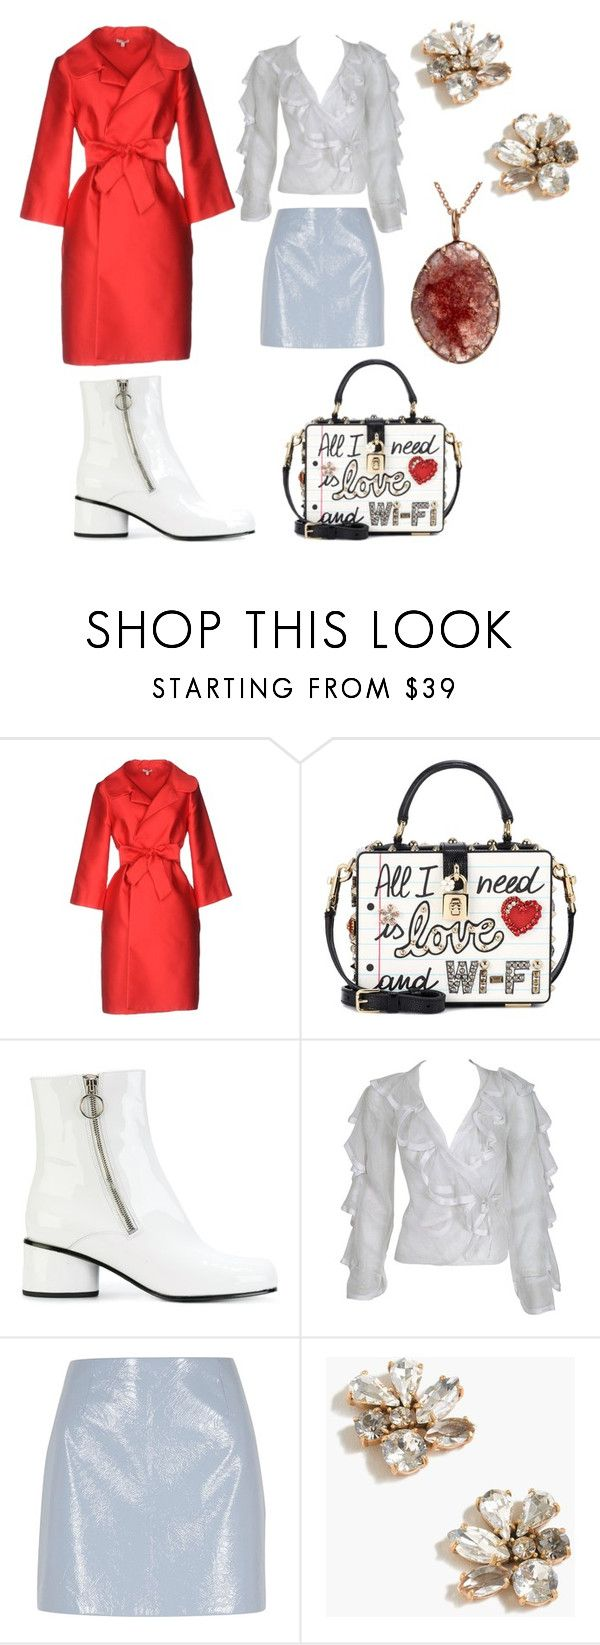 """Untitled #1438"" by aqualyra ❤ liked on Polyvore featuring P.A.R.O.S.H., Dolce&Gabbana, Marc Jacobs, Ossie Clark, River Island and J.Crew"